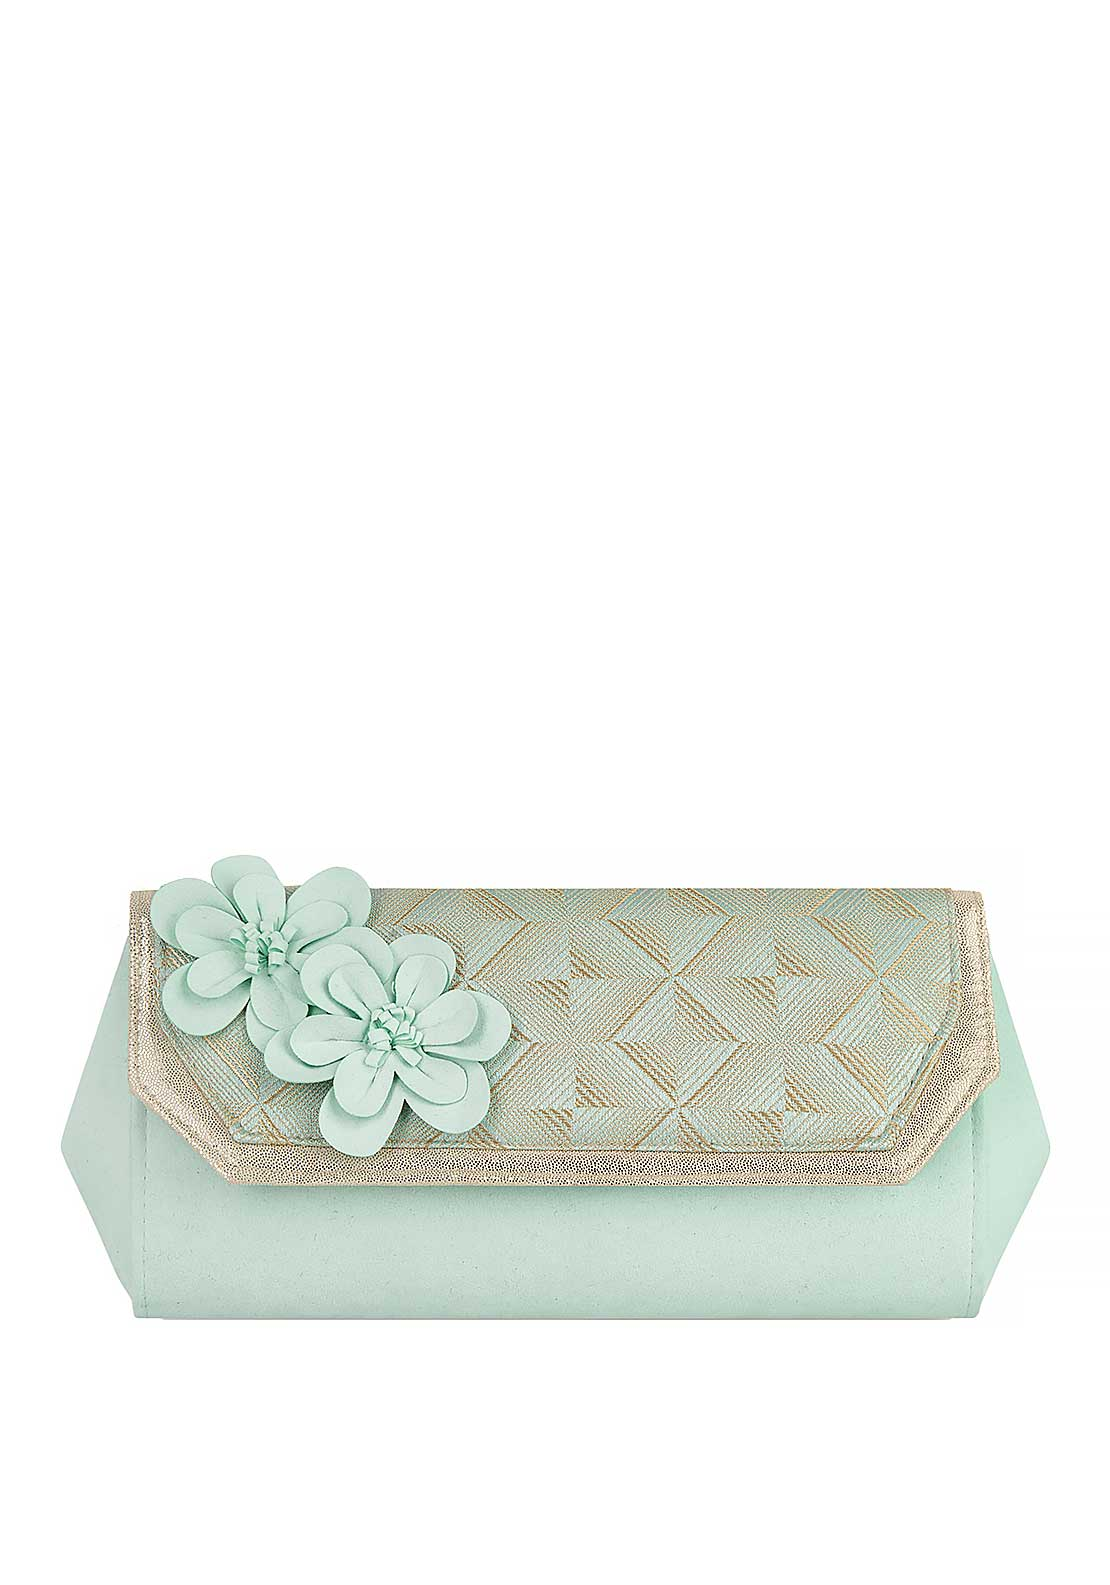 Ruby Shoo Stockholm Flower Shimmer Clutch Bag, Mint and Gold